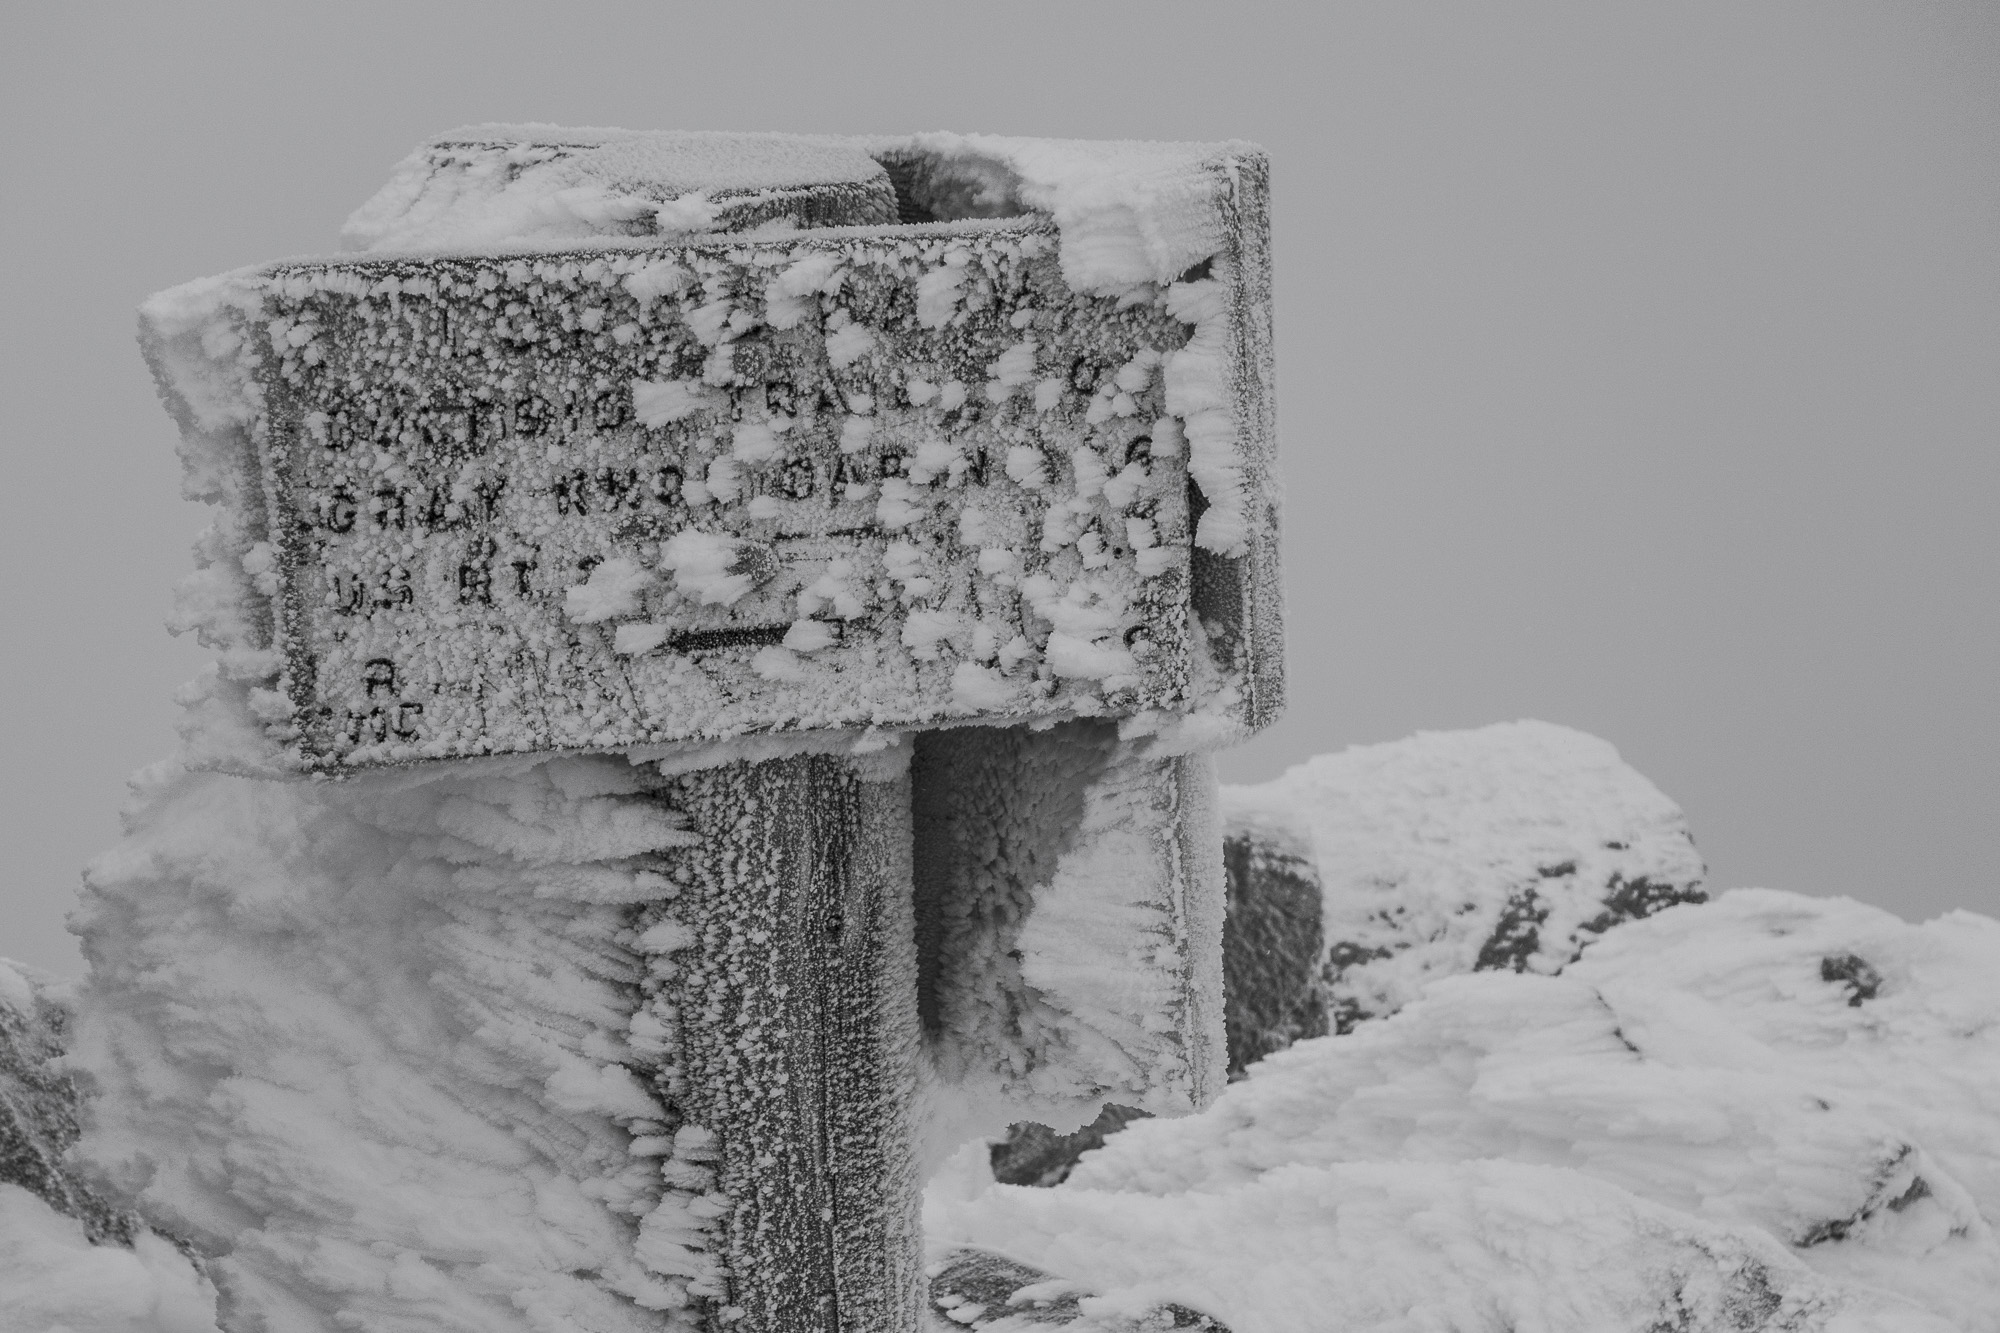 Trail signs on the top of Mount Adams. | Credit: Ryan Wichelns